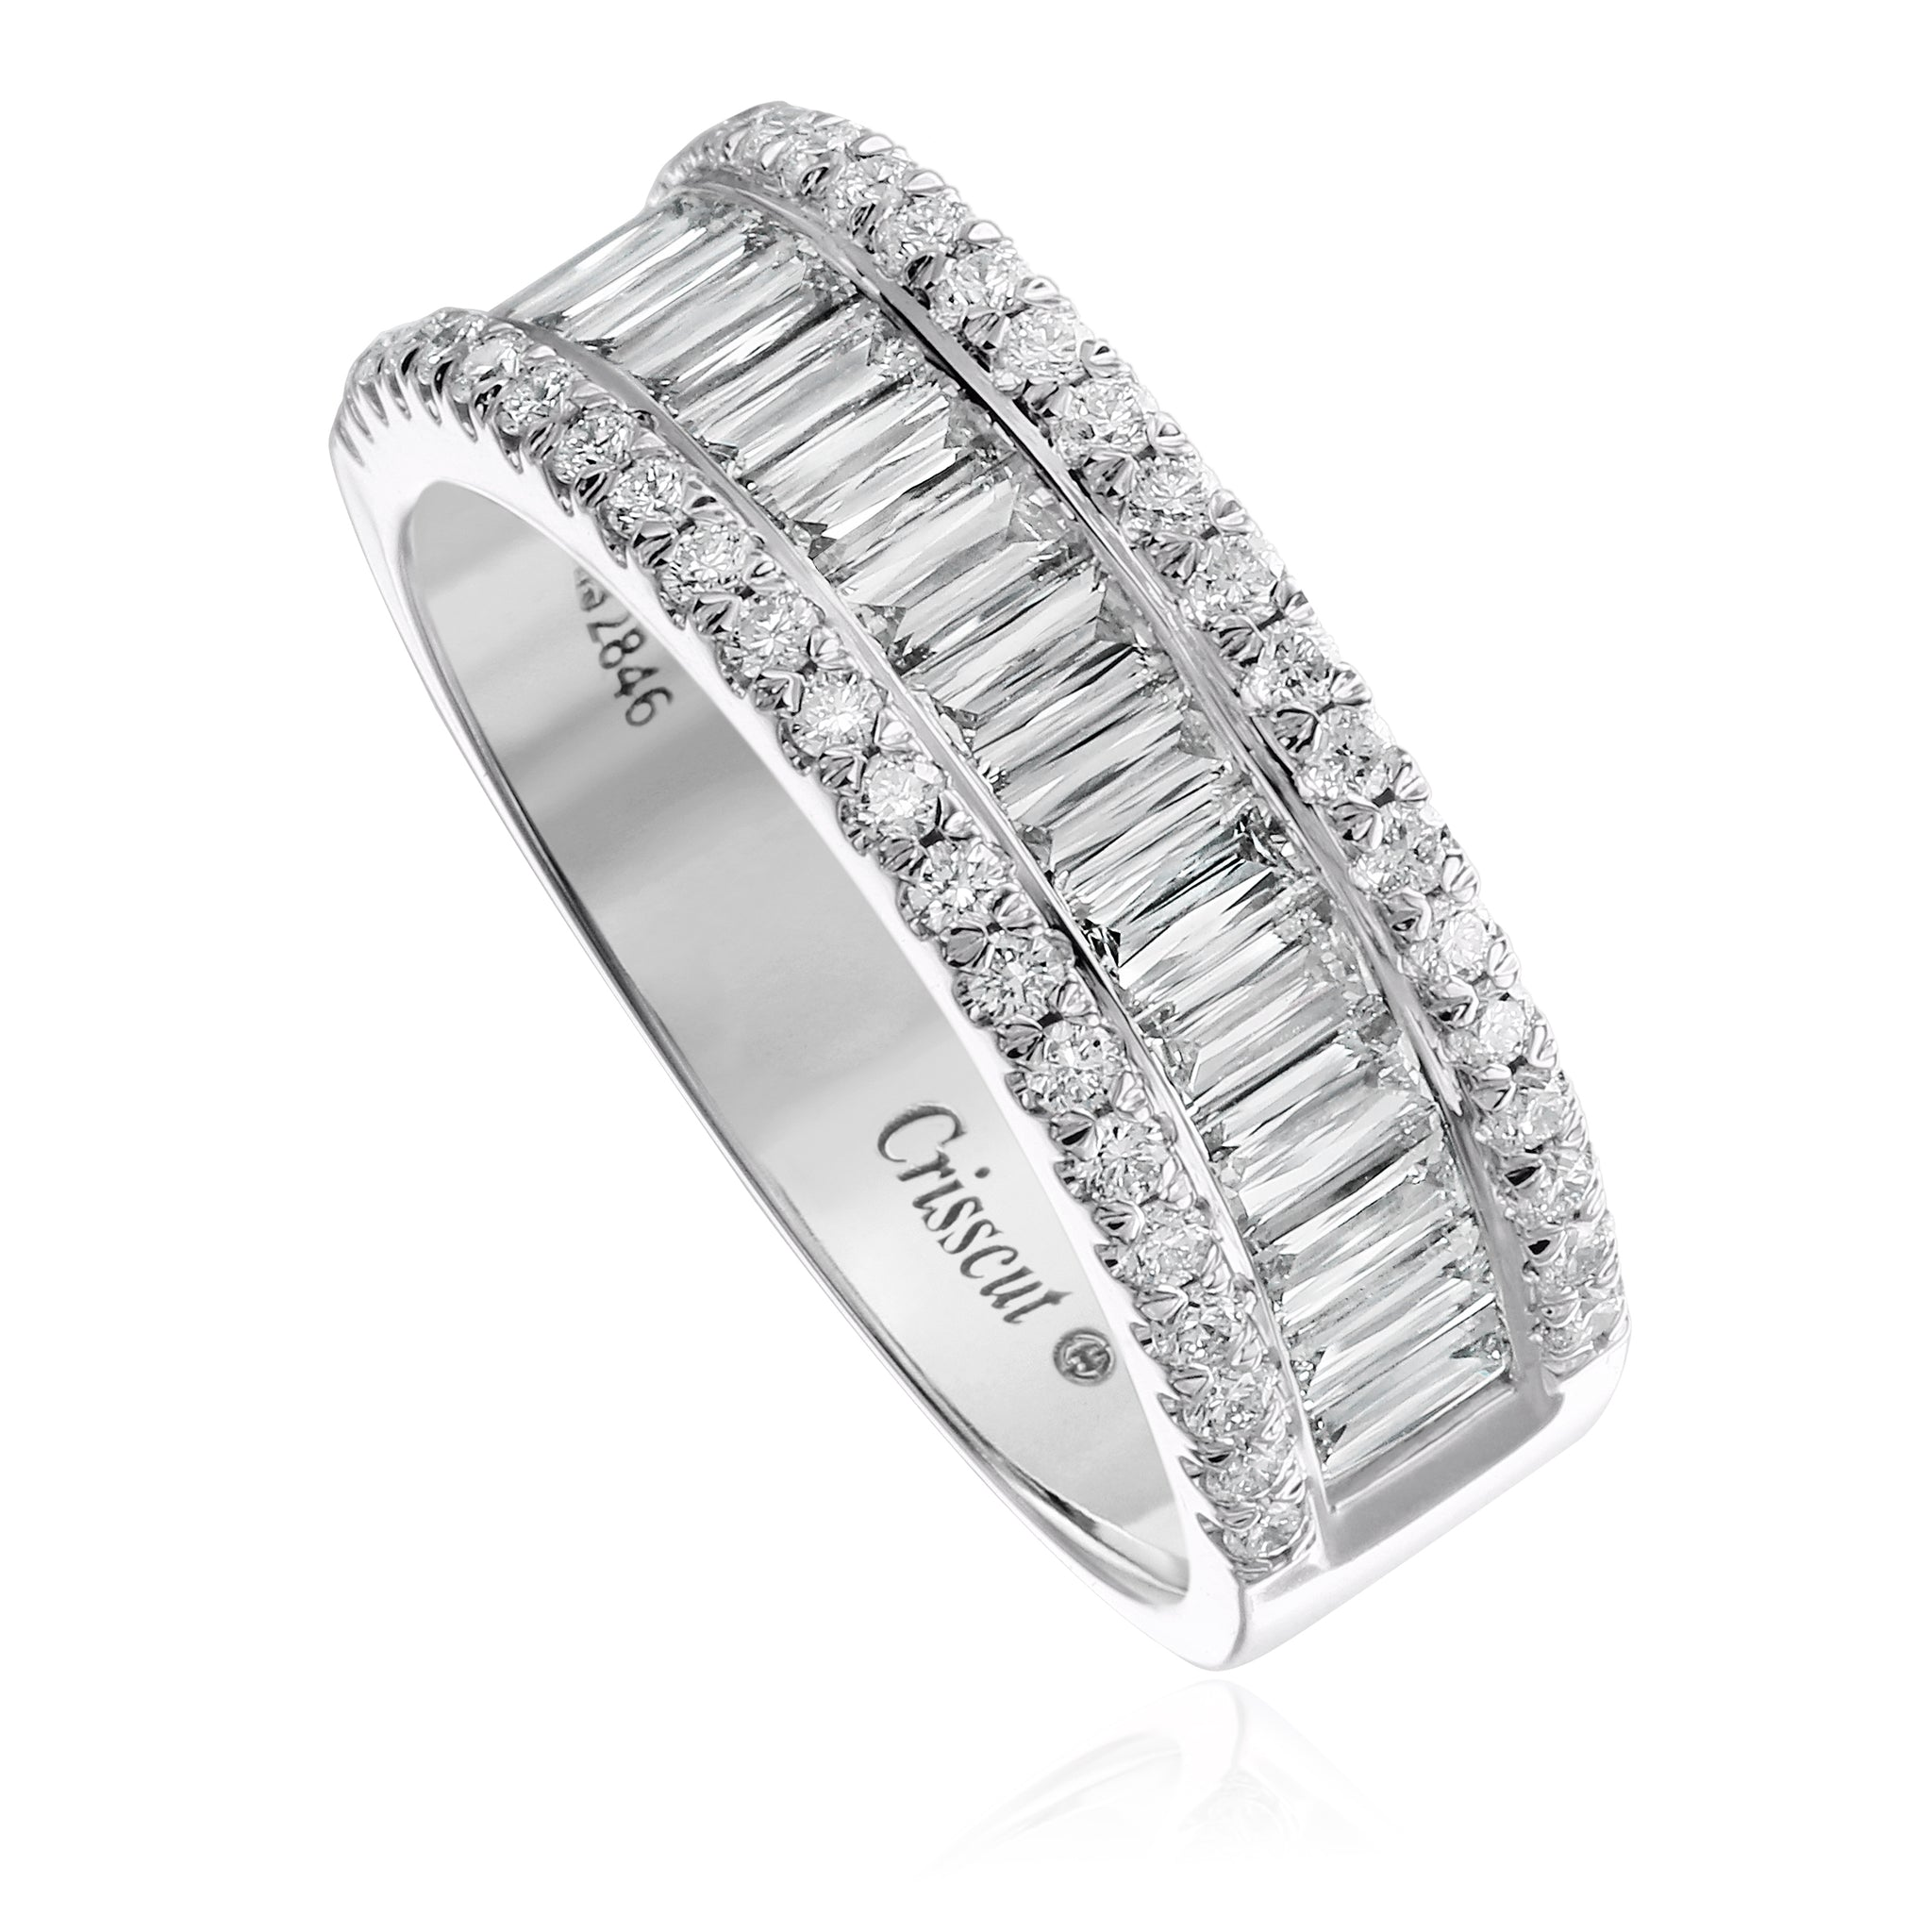 Christopher Designs Crisscut Diamond Wide Band